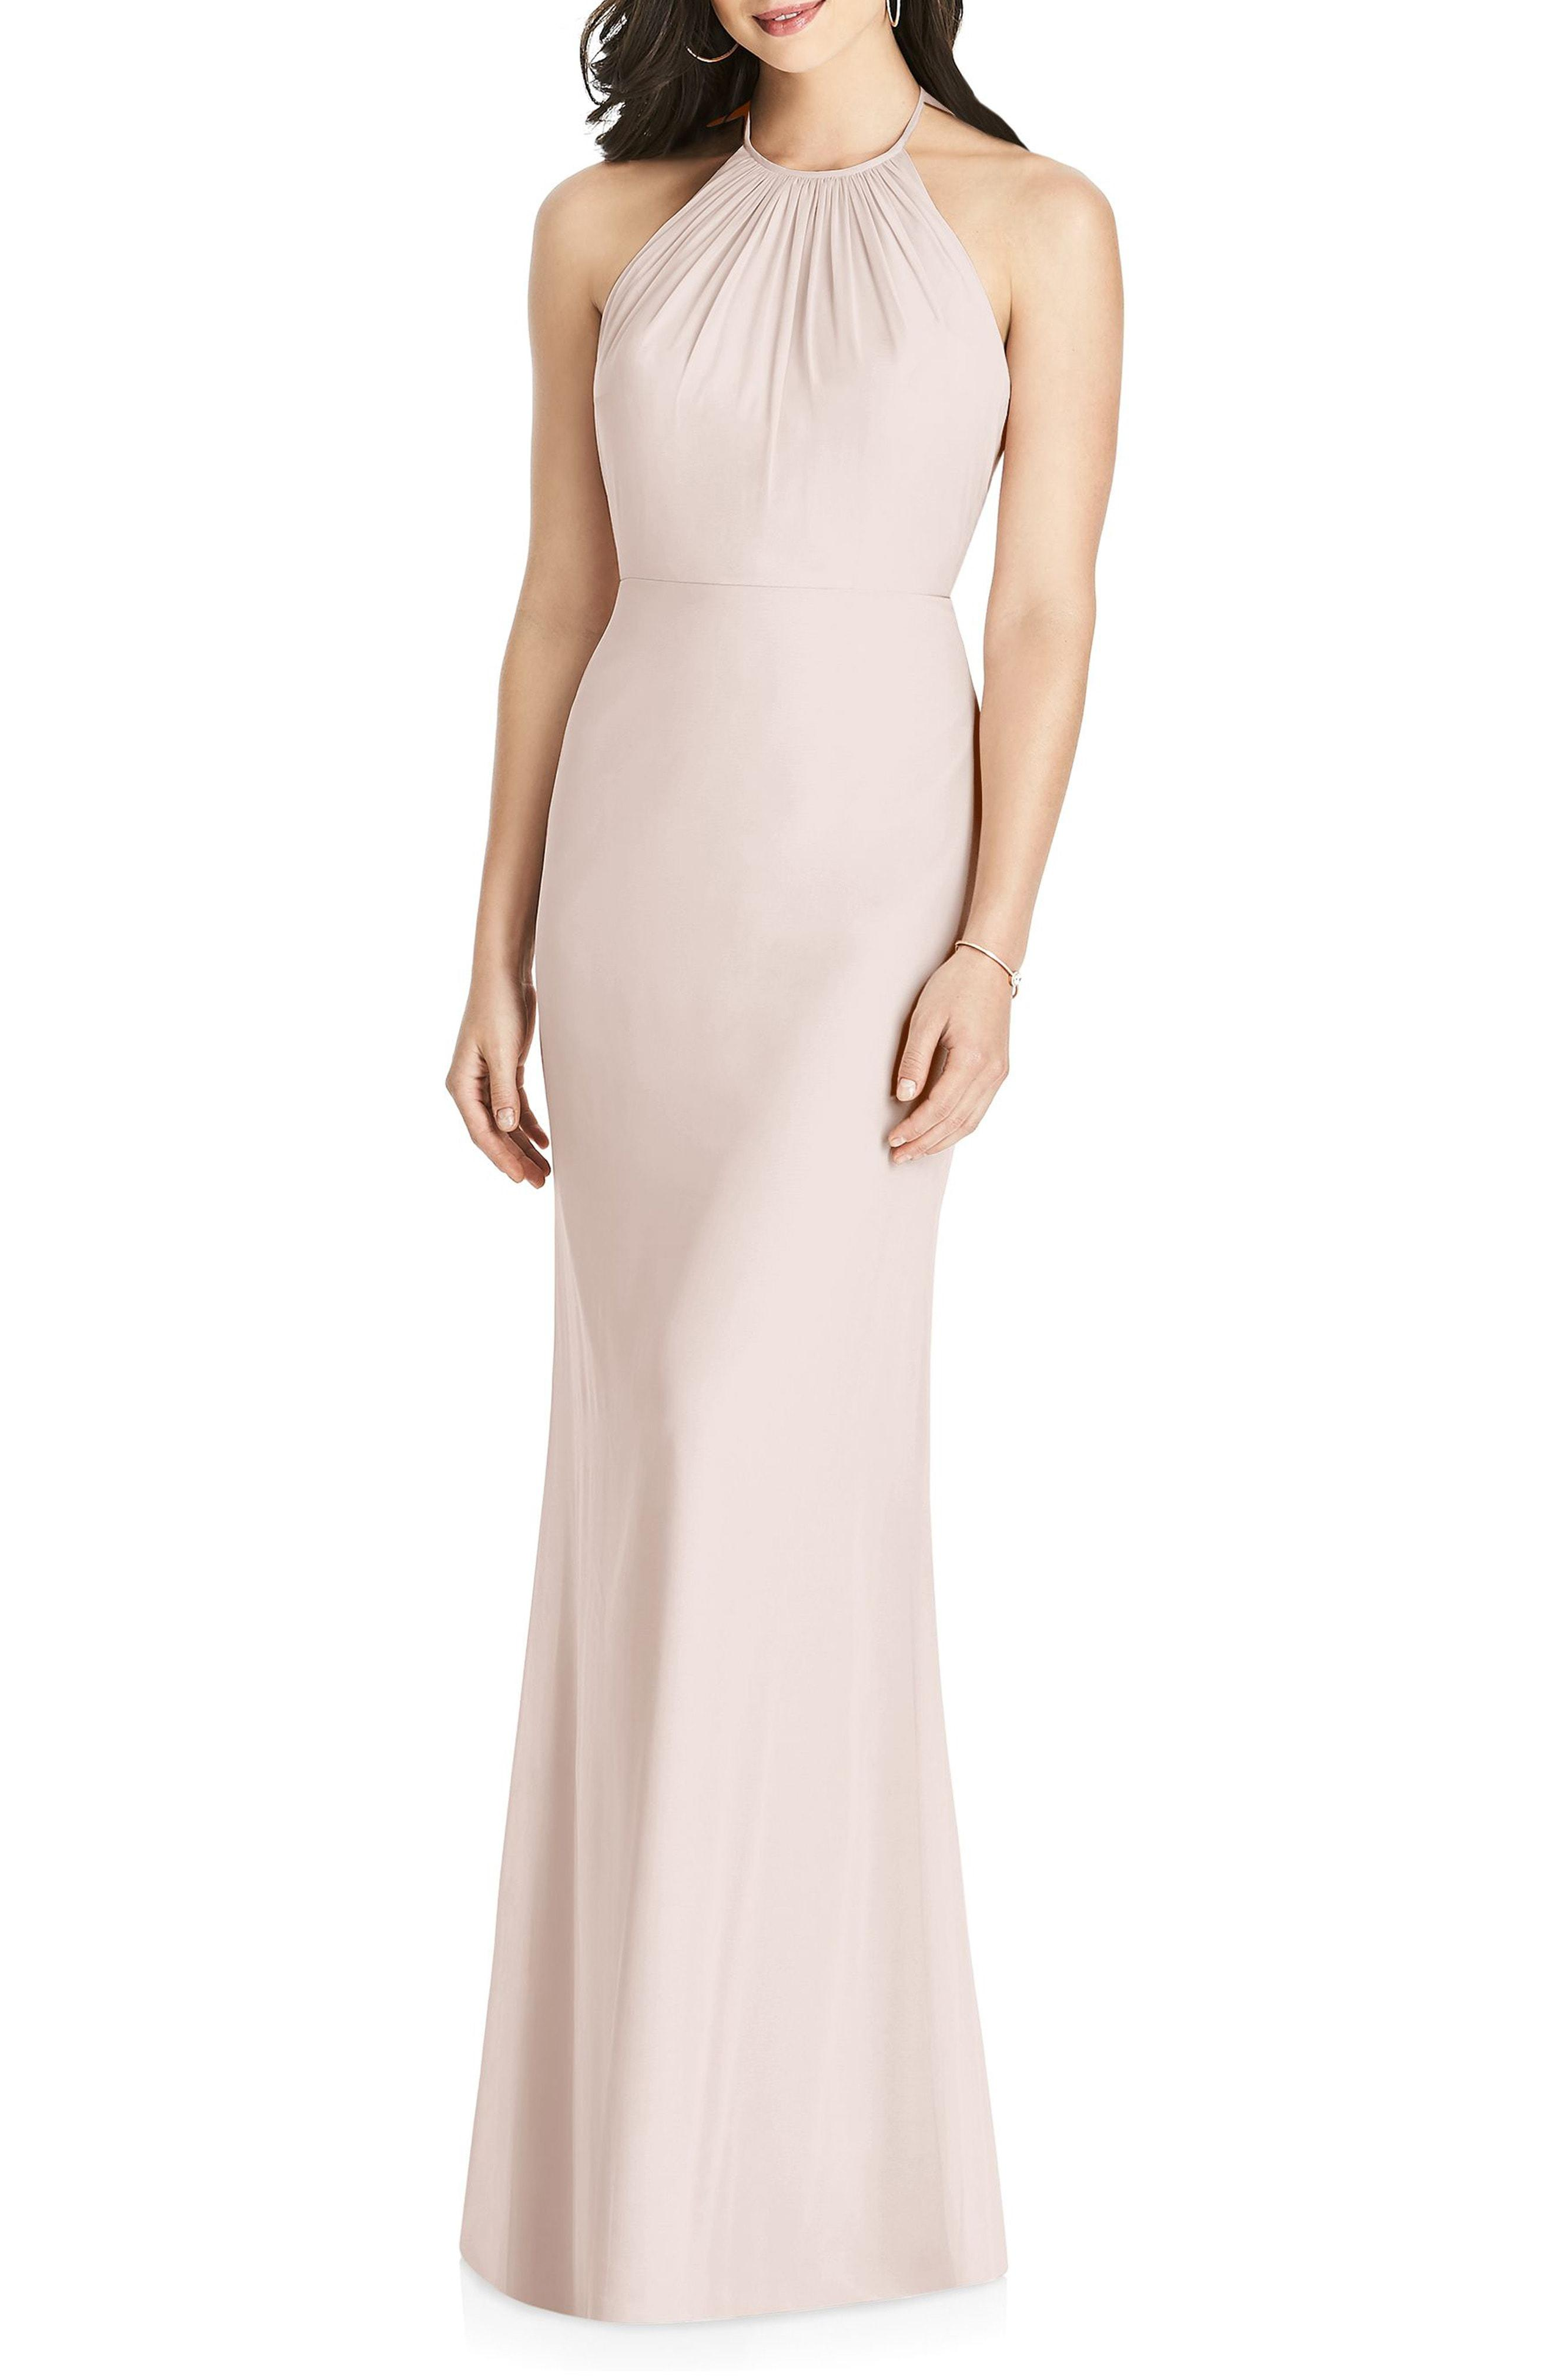 5cb1f82cd3 Lyst - Dessy Collection Ruffle Back Chiffon Halter Gown in Pink